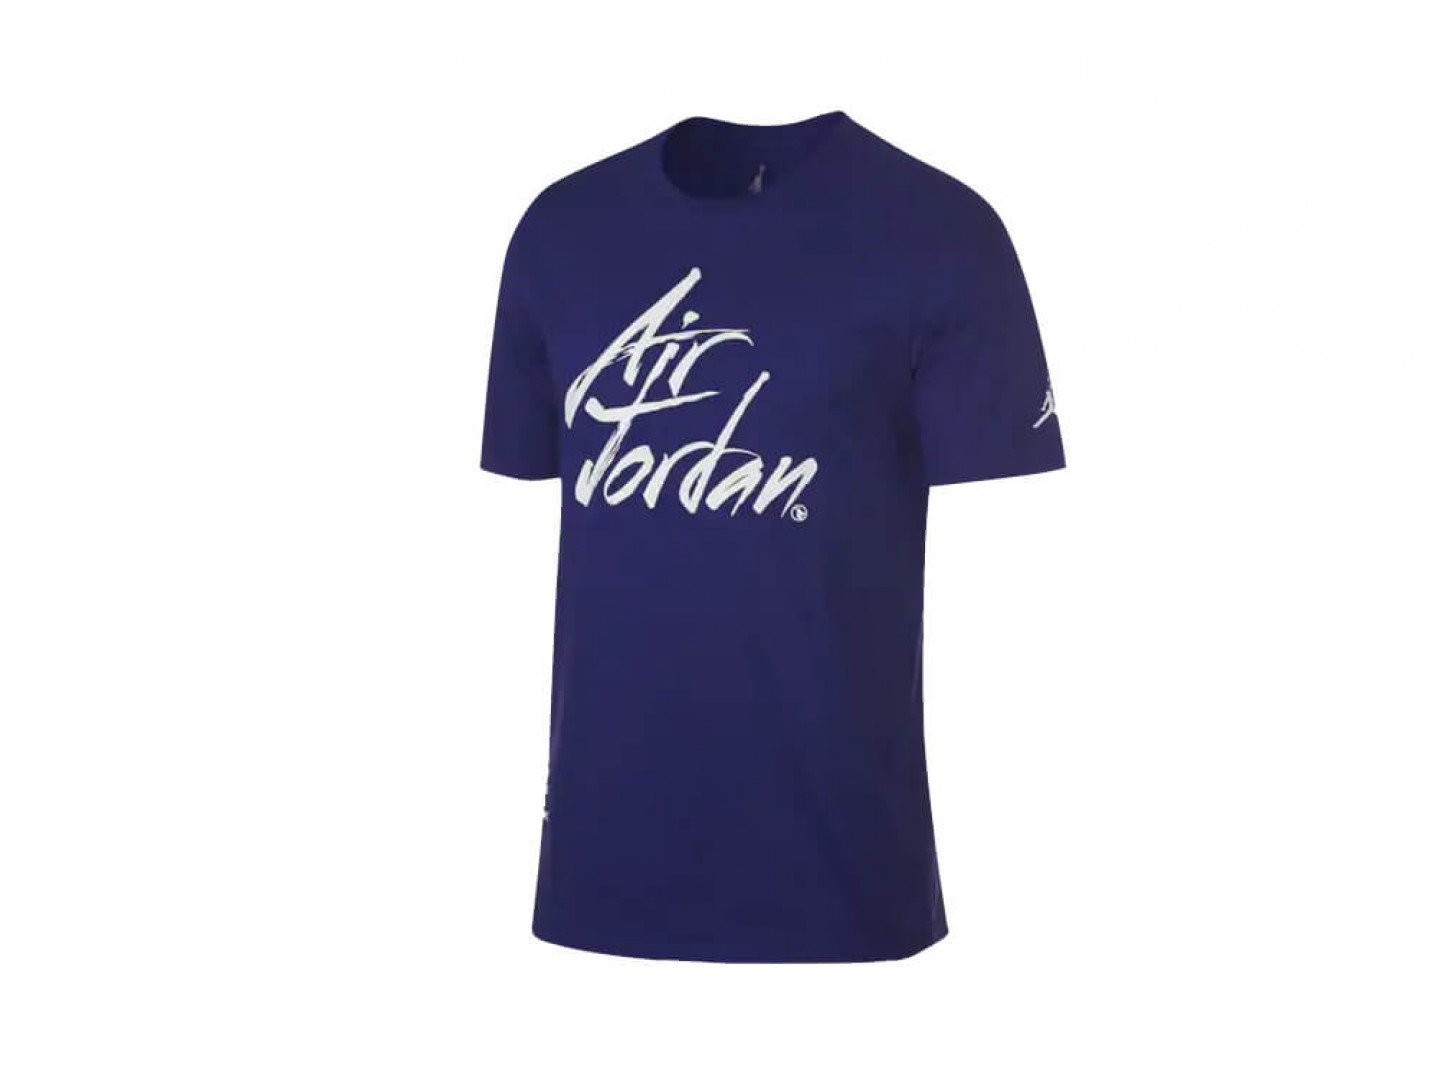 Футболка Air Jordan JSW Greatest Air Jordan T-Shirt, blue